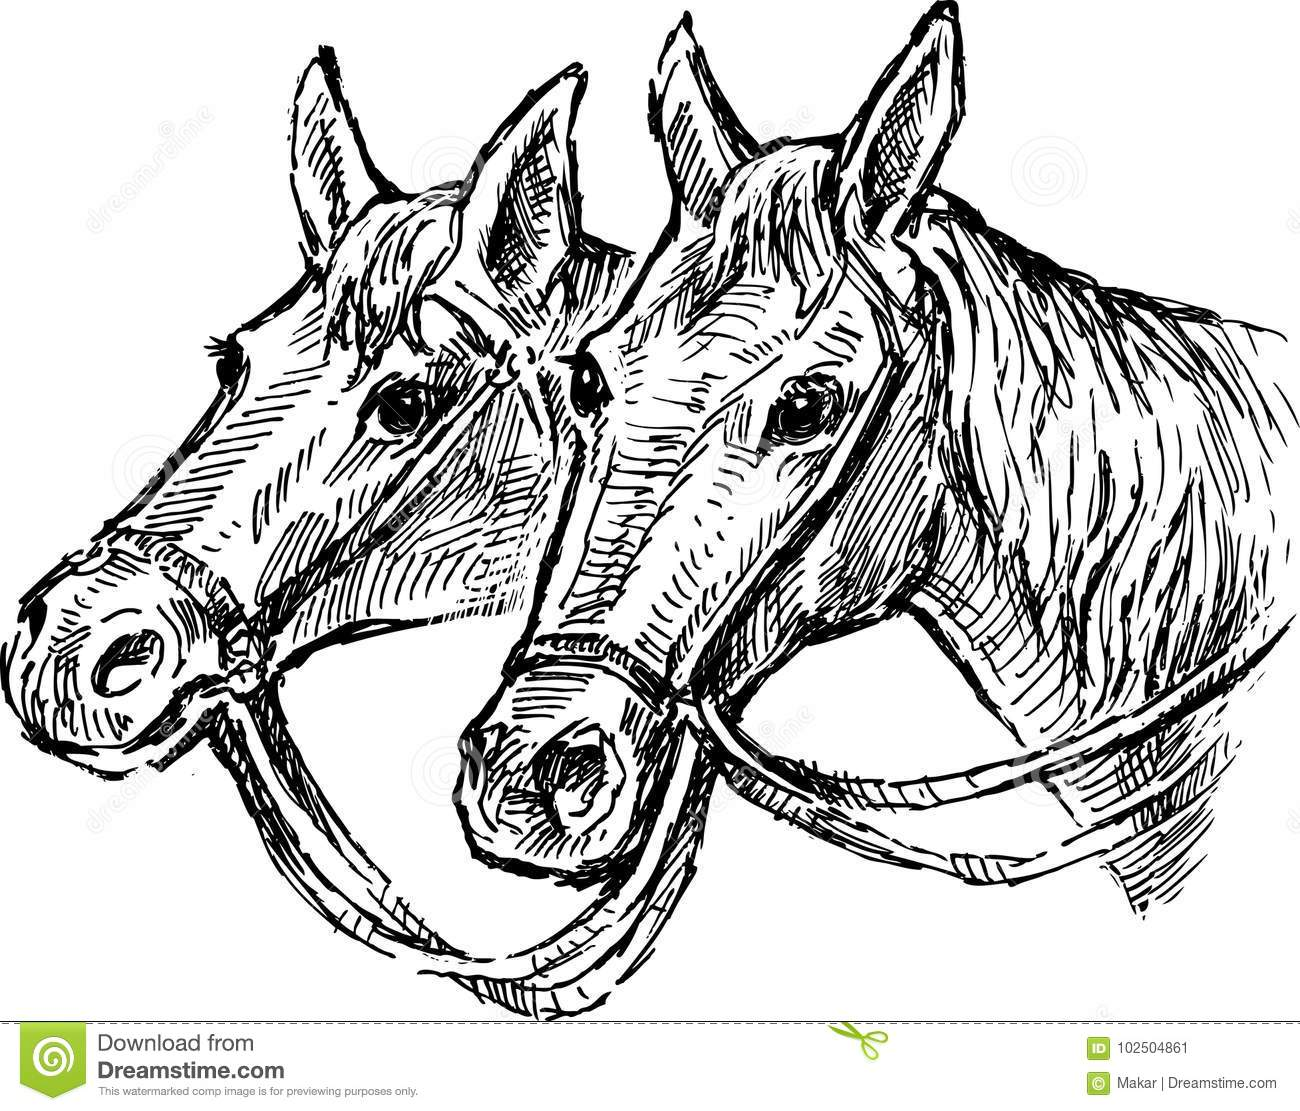 The Heads Of Two Horses Stock Vector Illustration Of Mane 102504861